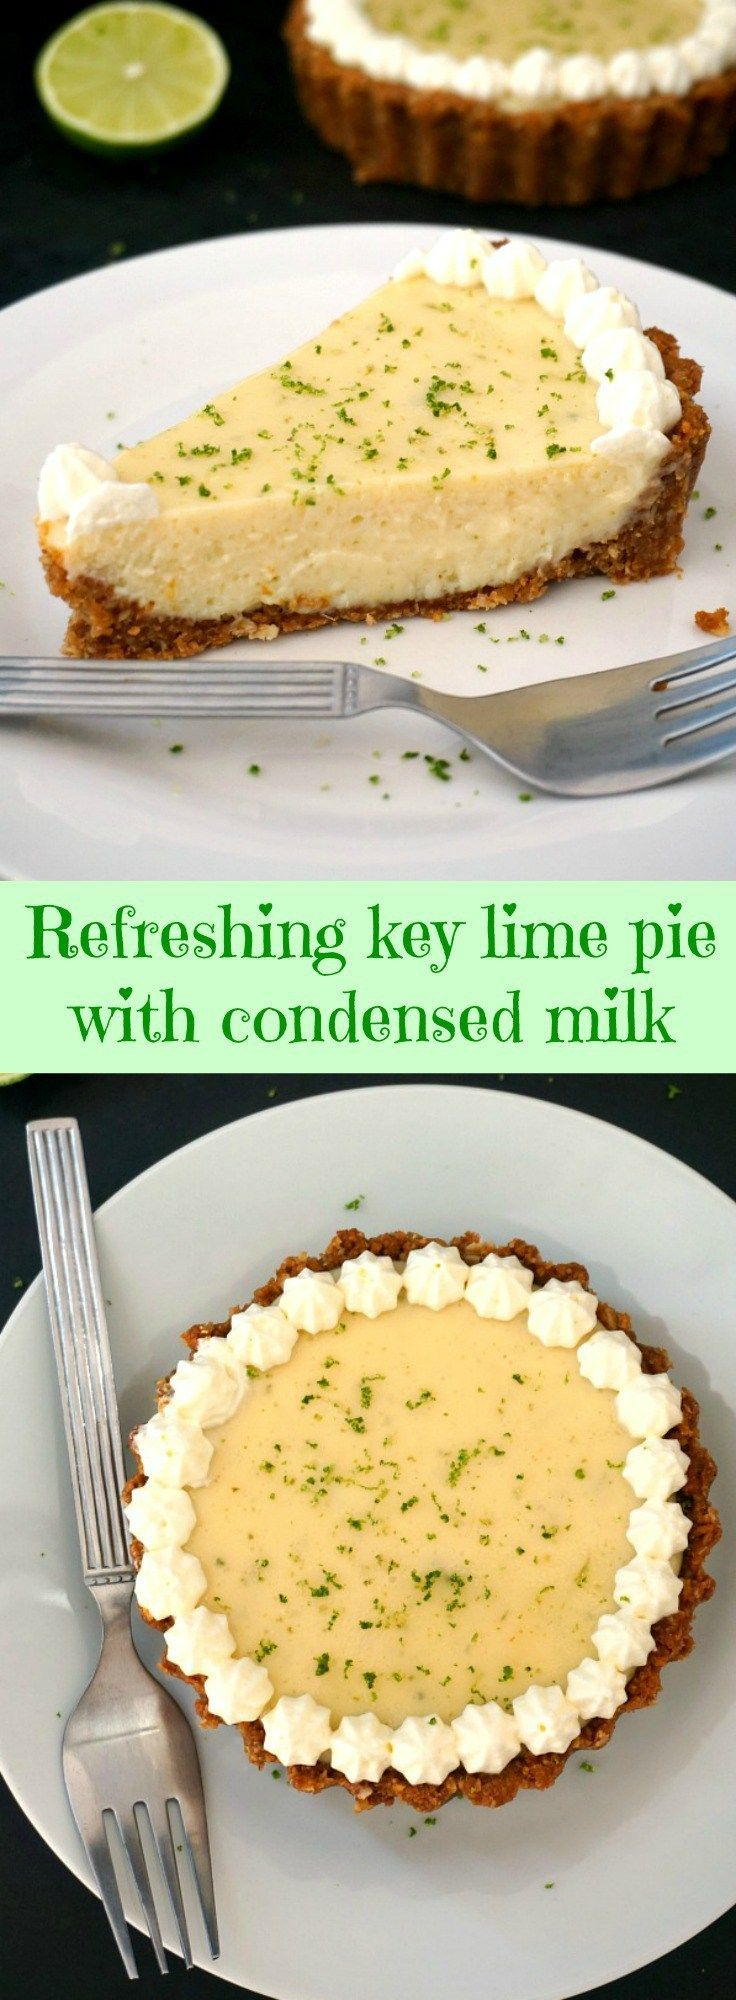 Refreshing key lime pie with condensed milk and whipped cream, a fabulous dessert with a silky filling and a crumbly biscuit crust.